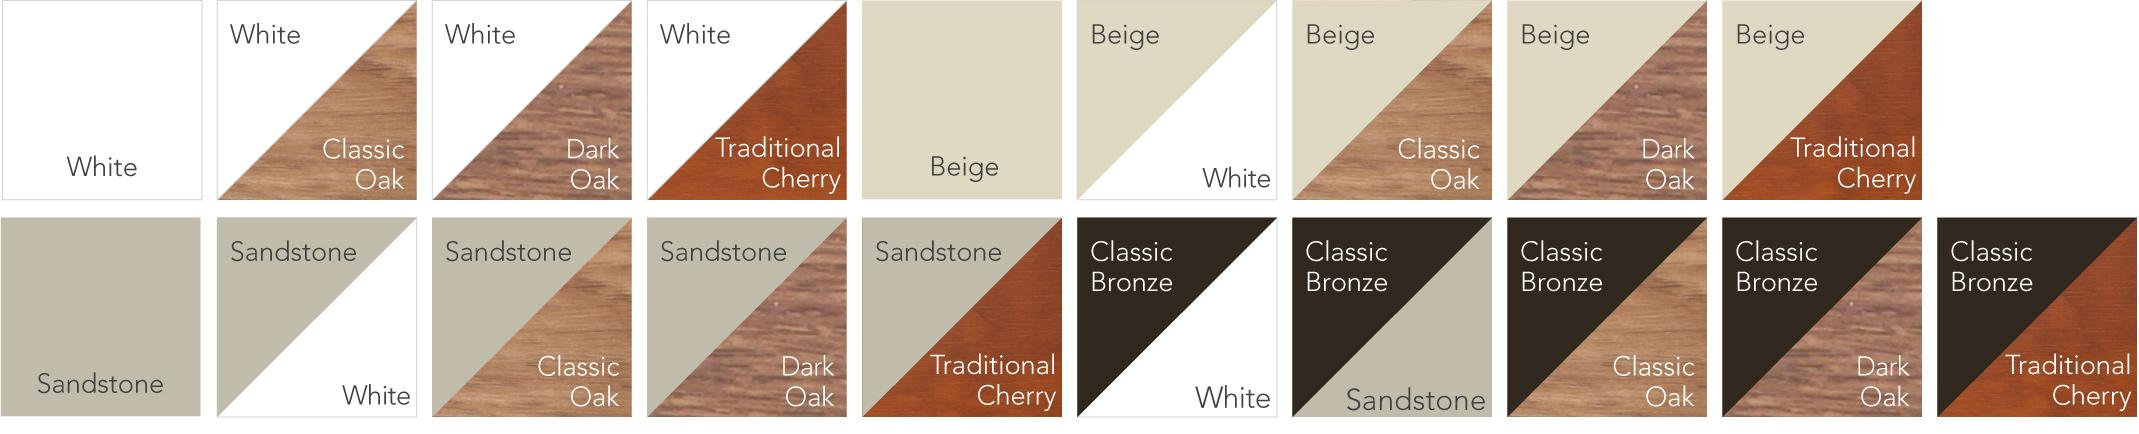 Aeris™ Window Grid Colors include White, Classic Oak, Dark Oak, Traditional Cherry, Beige, Sandstone, Classic Bronze, and combinations thereof.